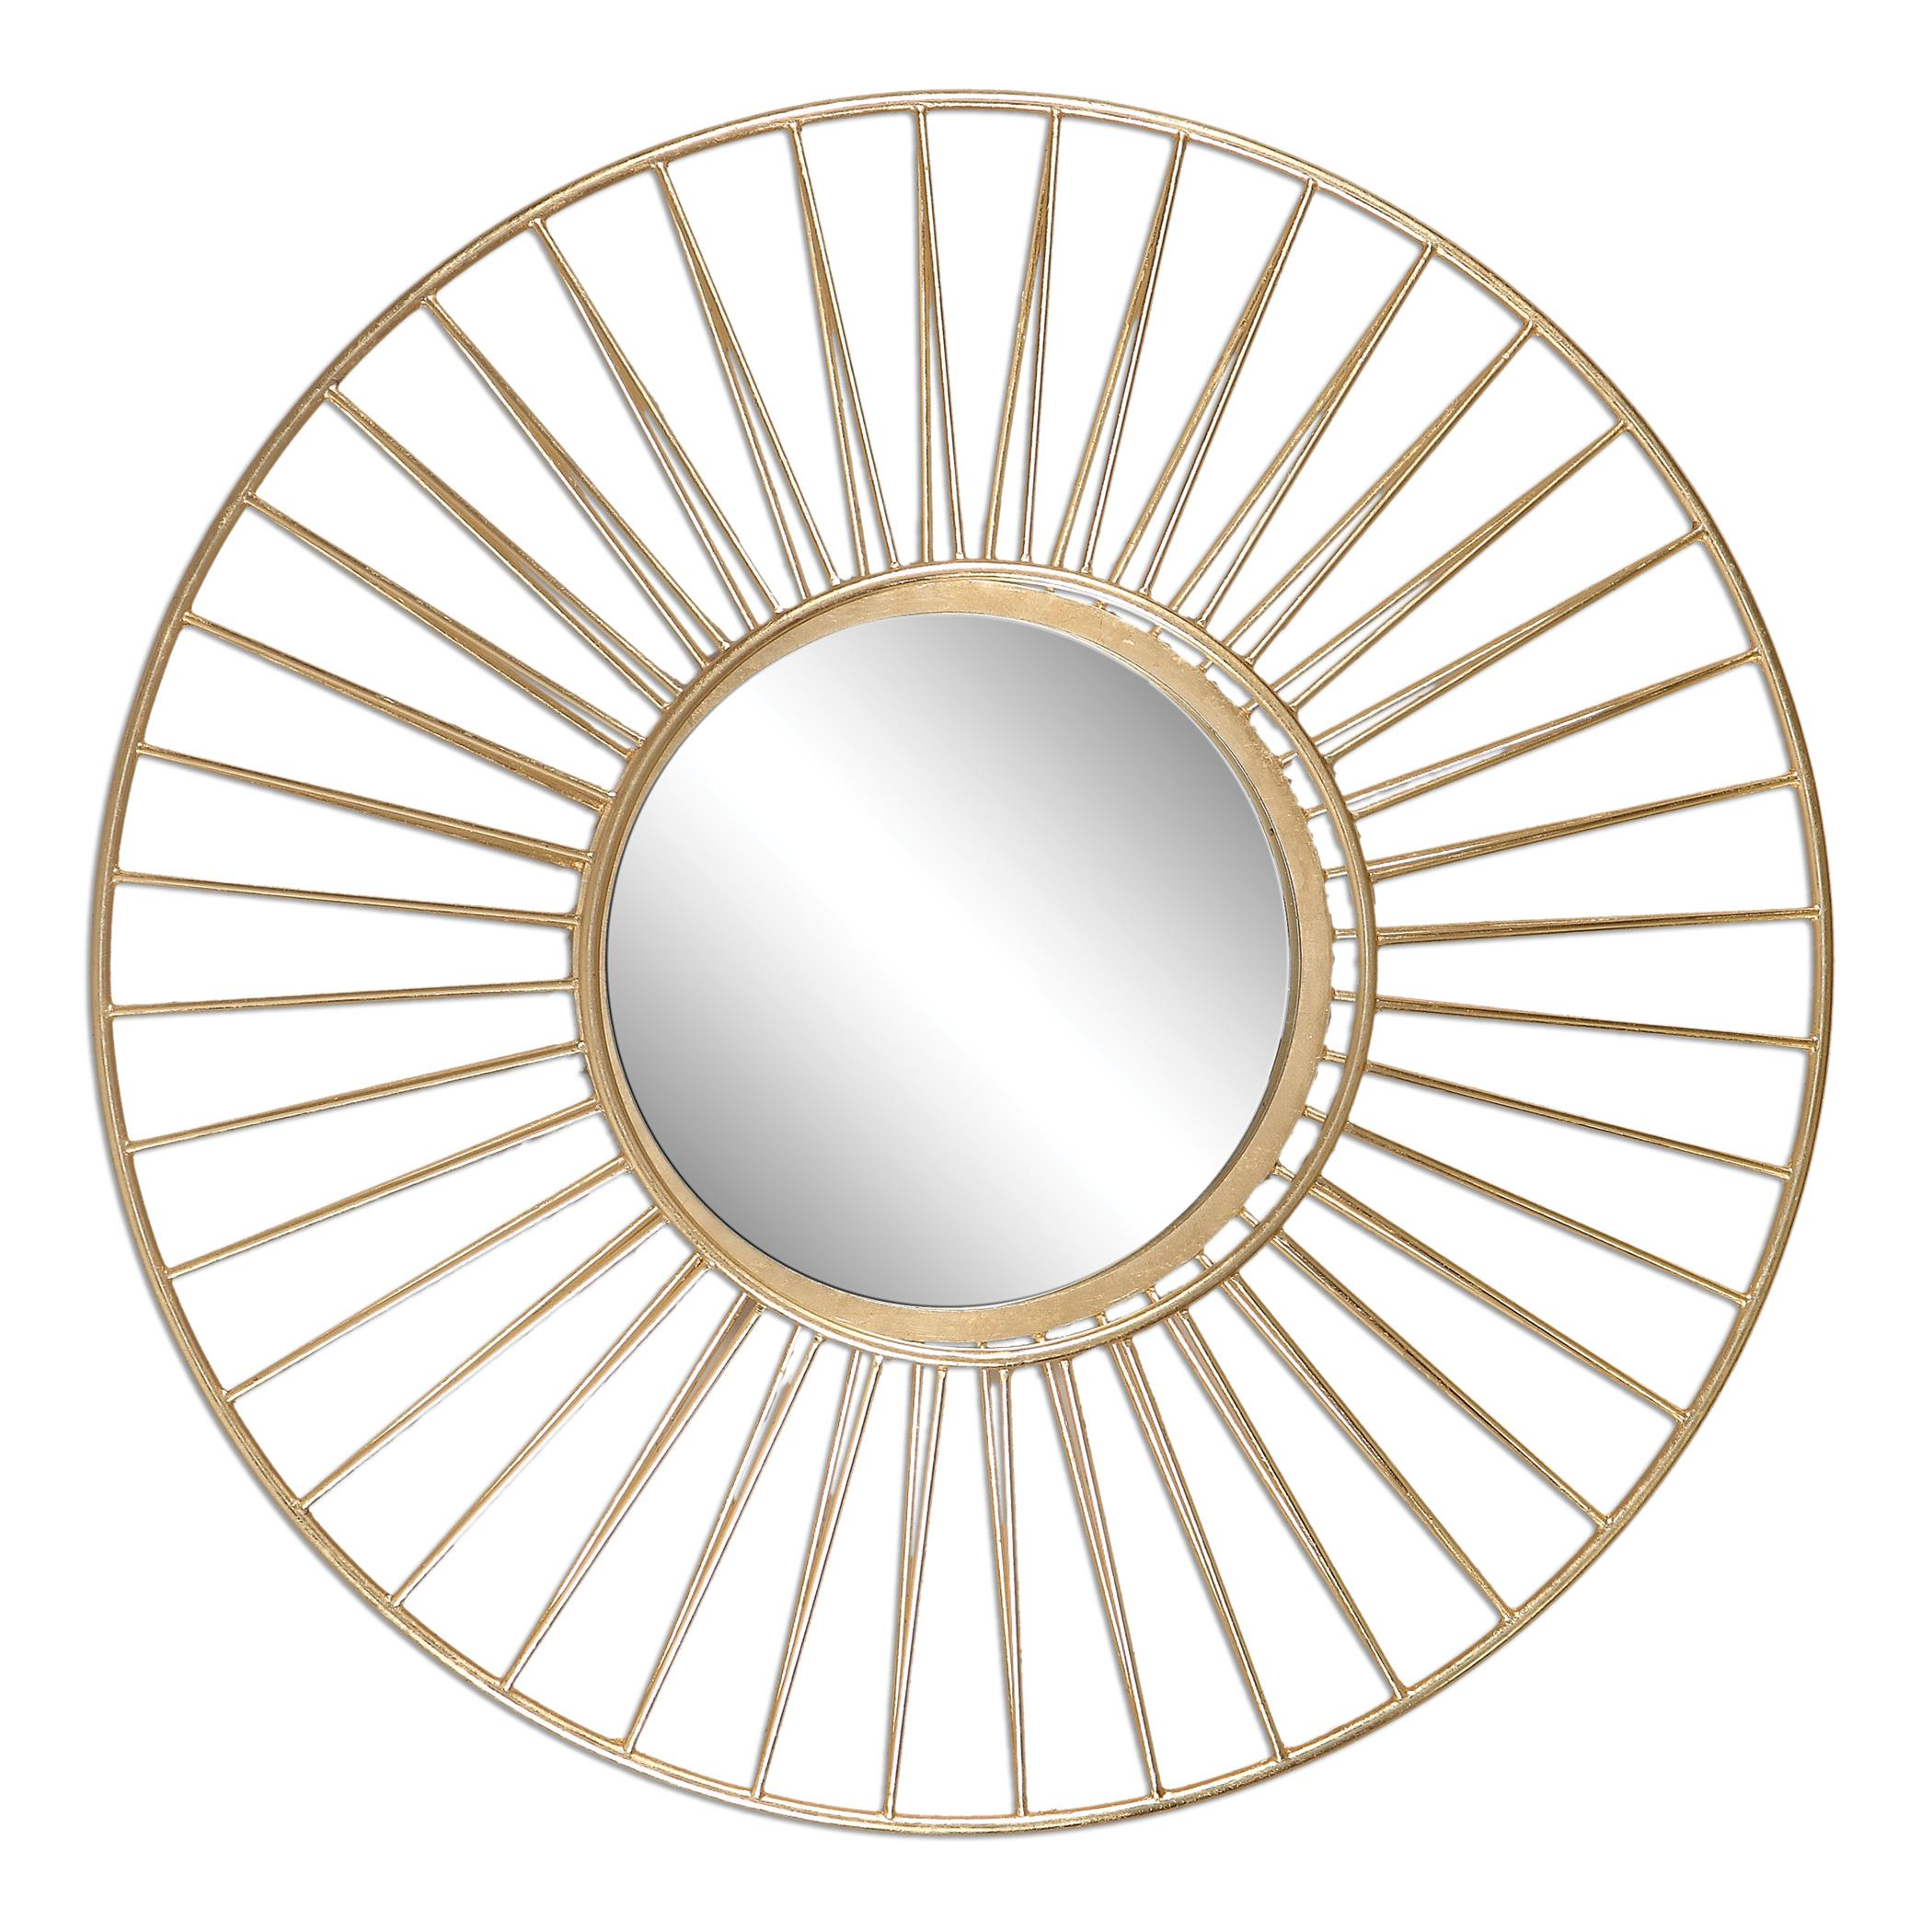 Uttermost Mirrors Caspian Round Mirror - Item Number: 01132